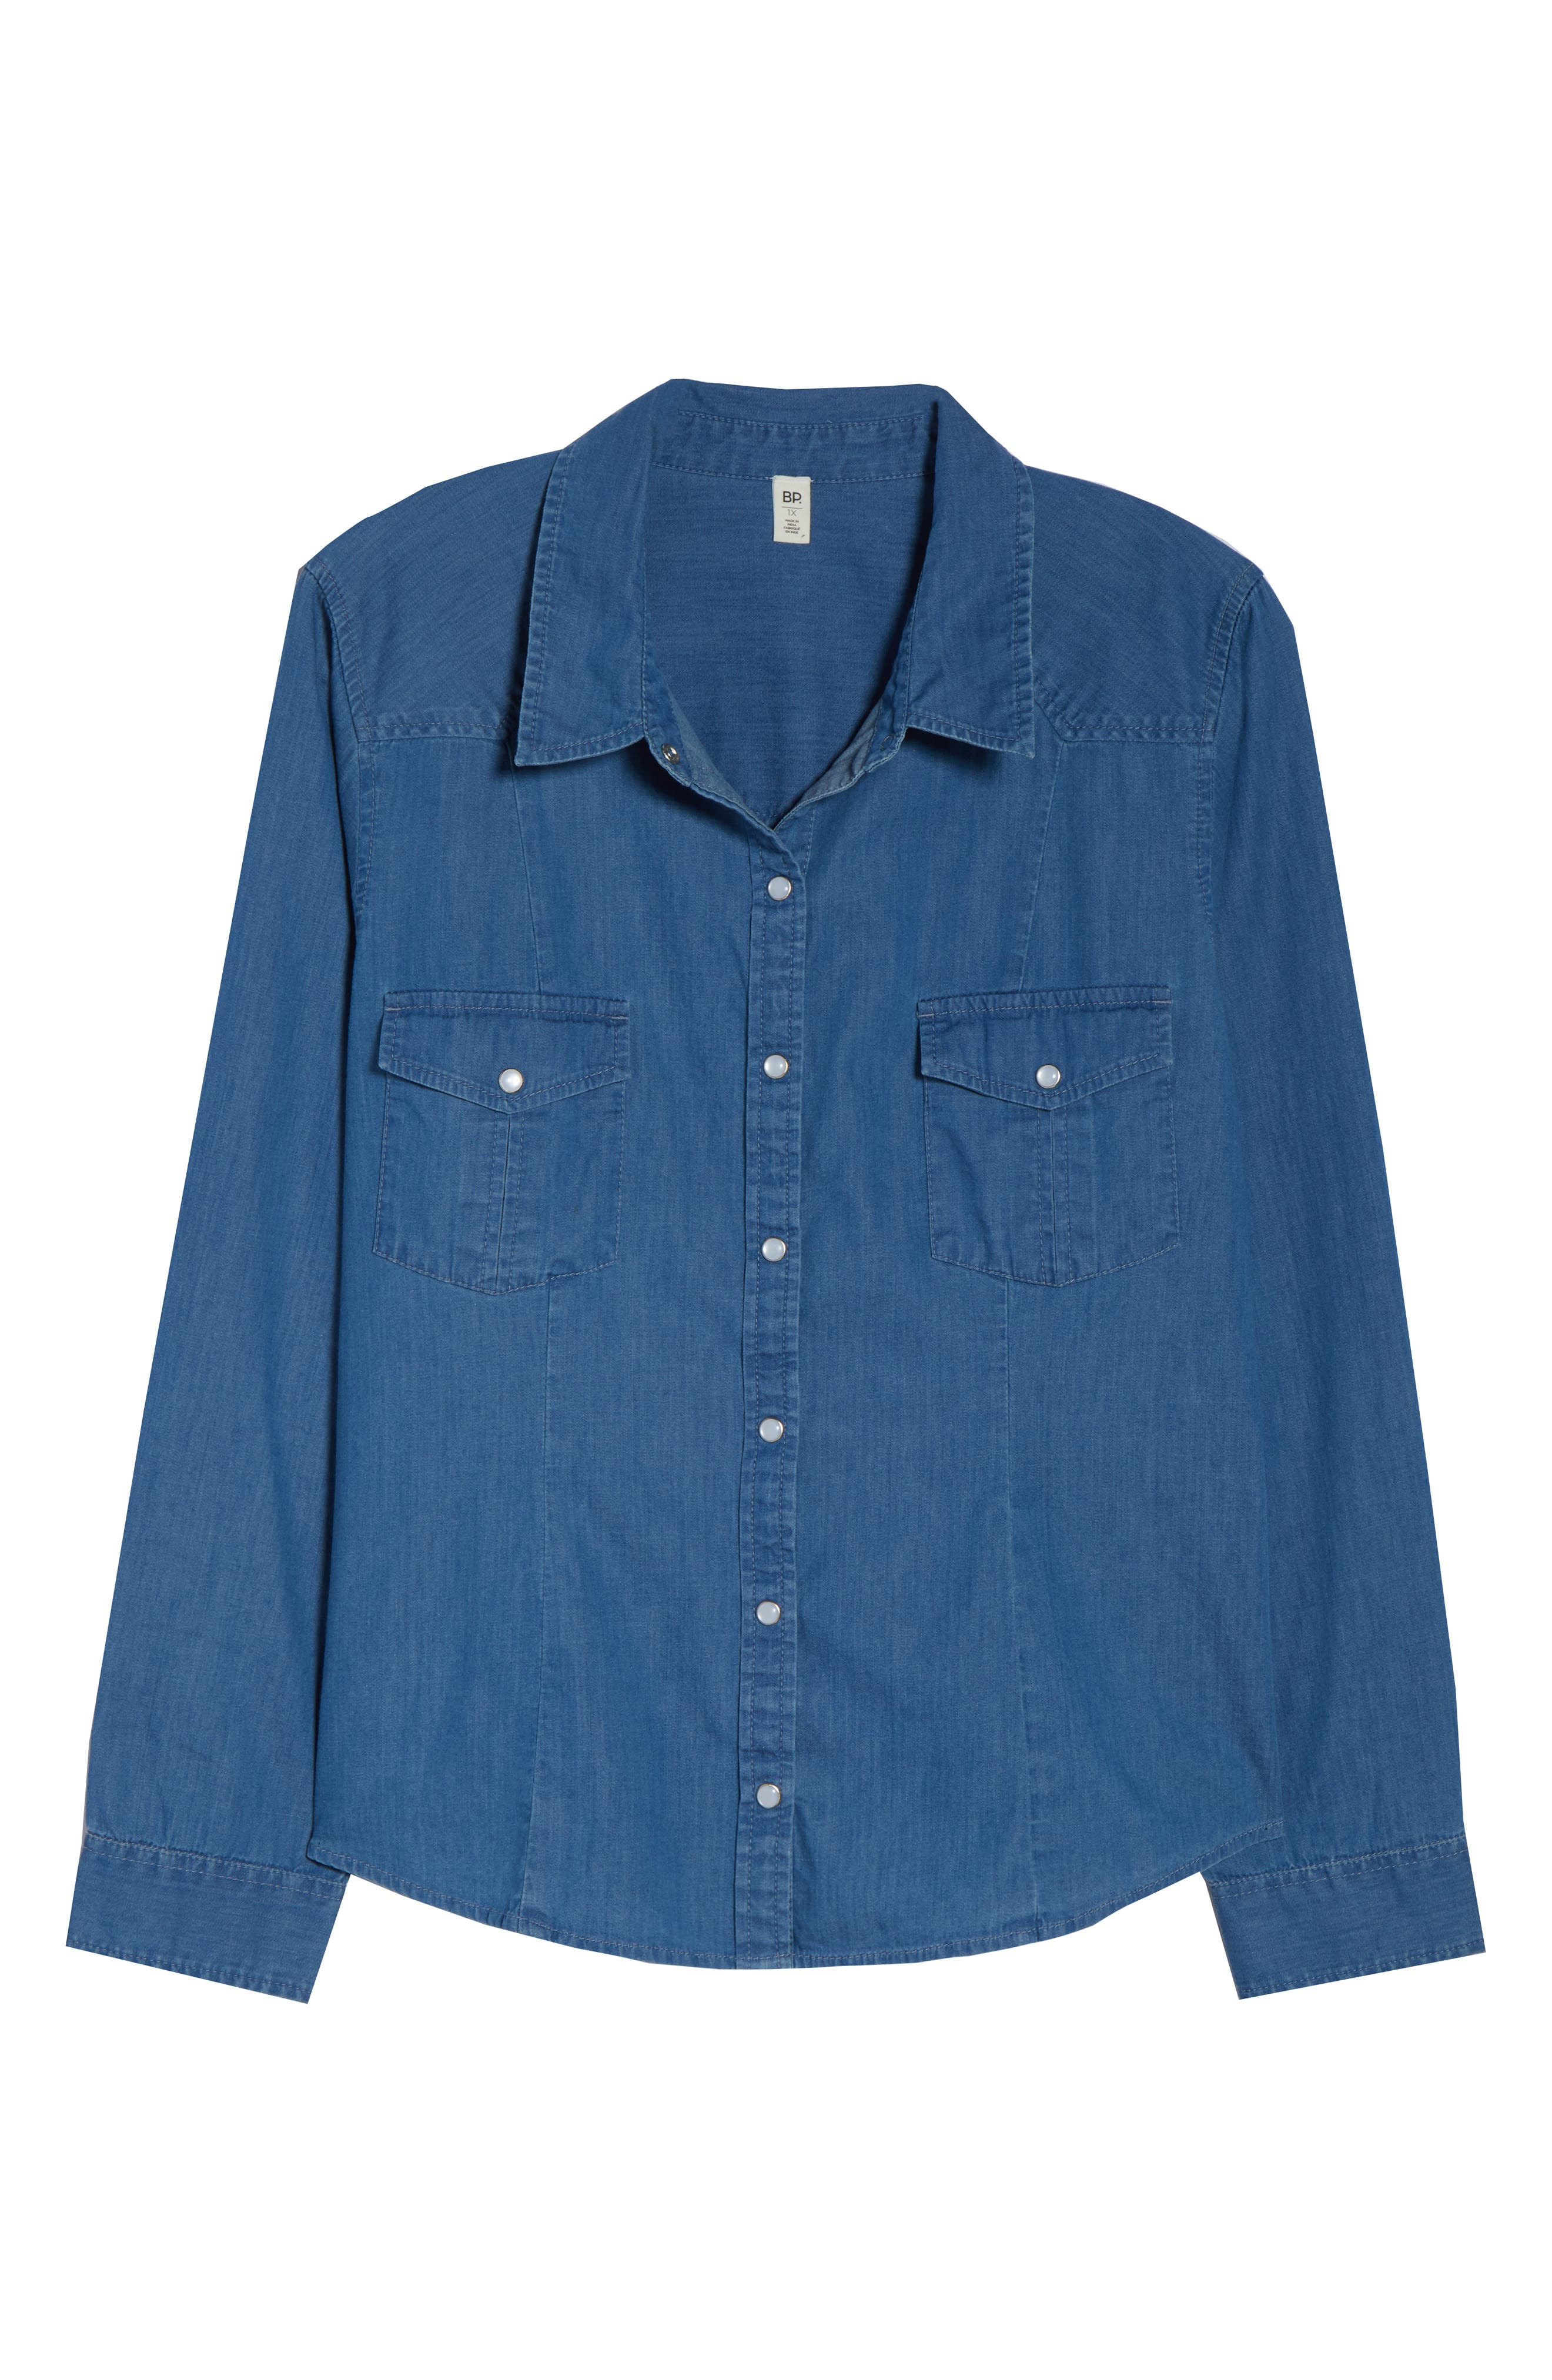 Fitted Chambray Shirt,                             Alternate thumbnail 12, color,                             ROBIN INDIGO